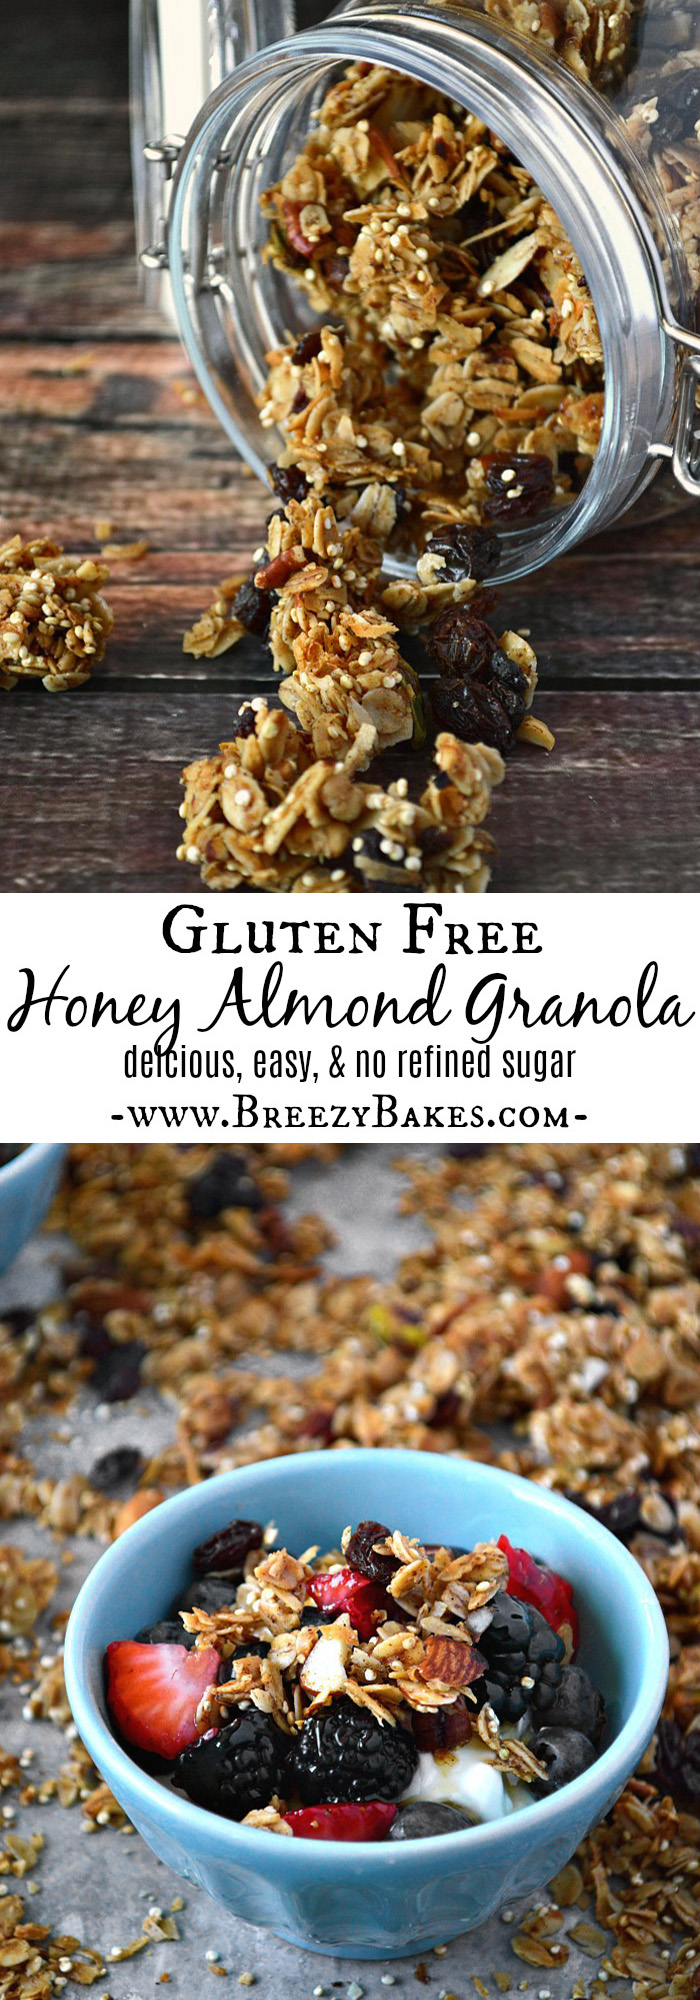 Gluten free honey almond granola breezy bakes this gluten free honey almond granola wont last long youll want ccuart Choice Image